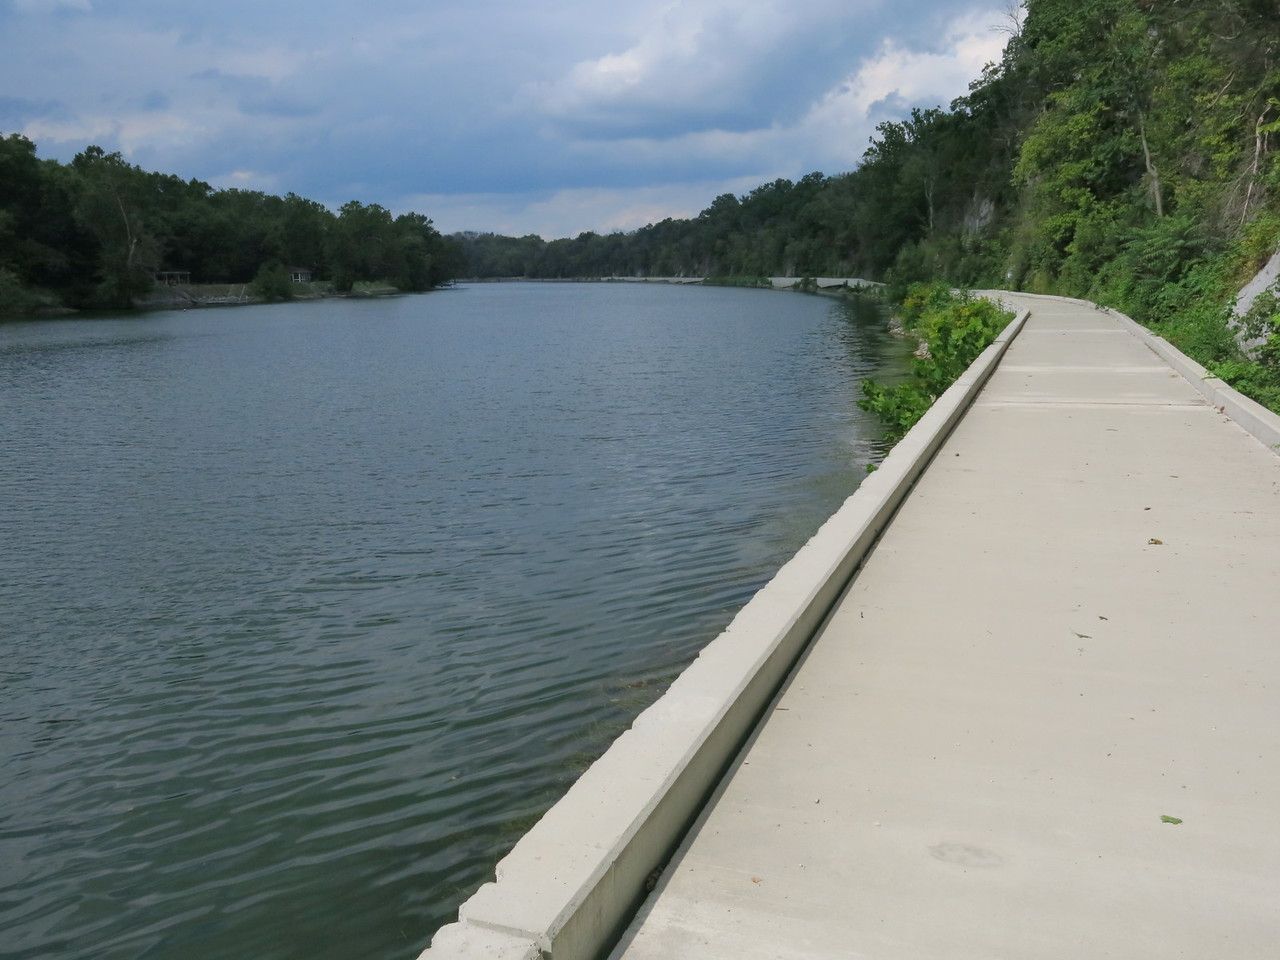 Looking back at the rebuilt towpath